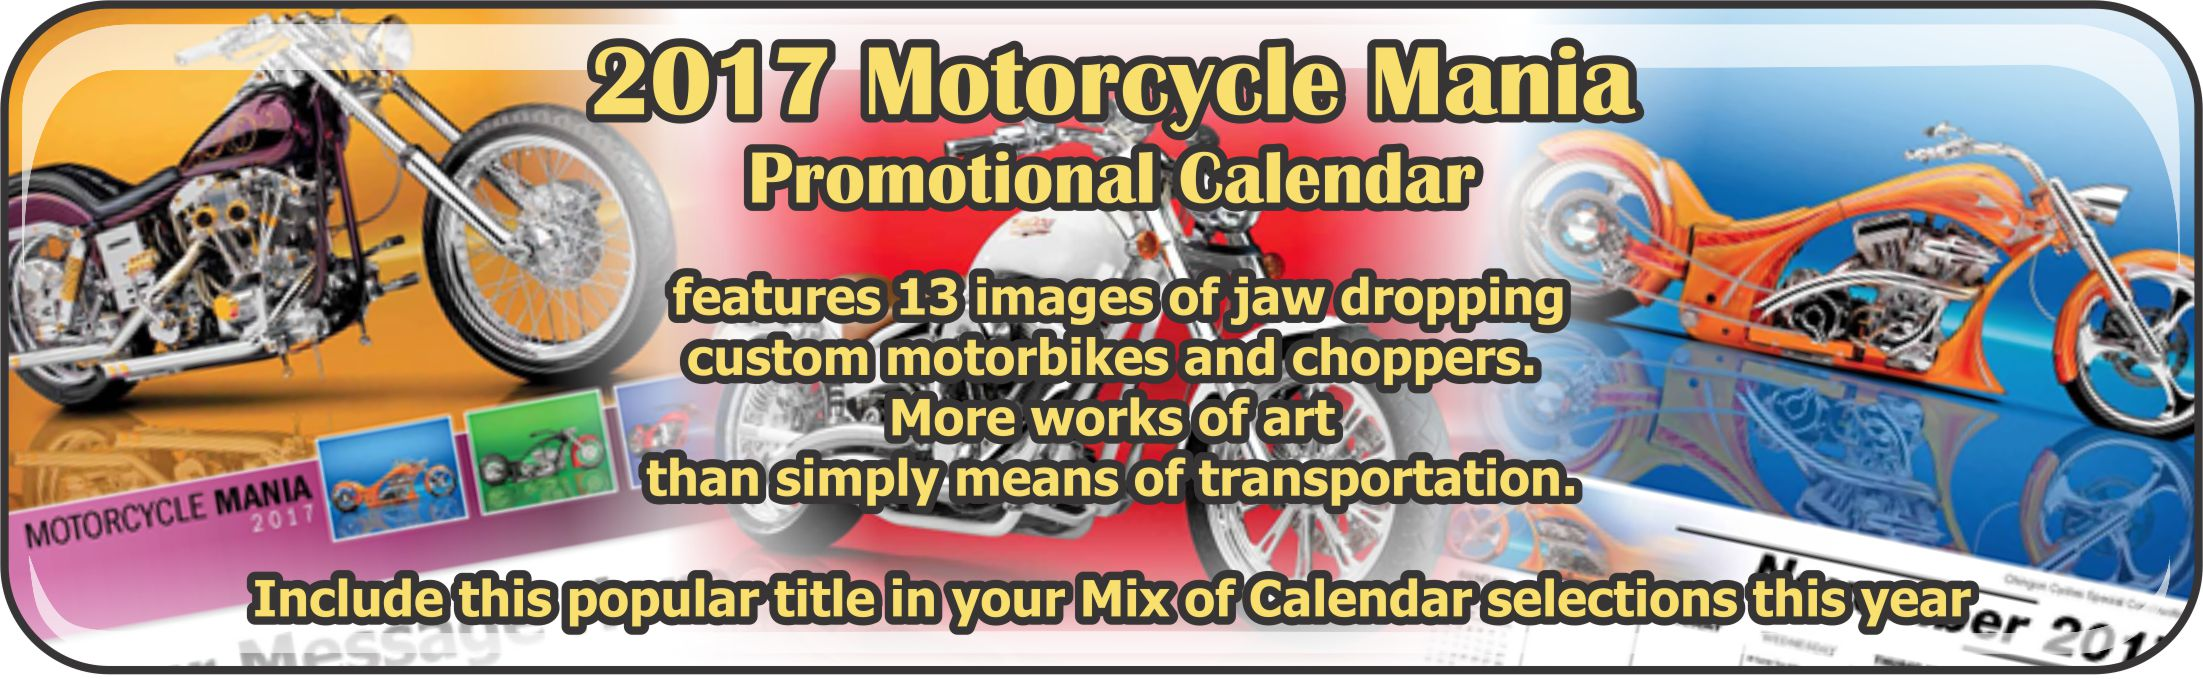 Promotional Calendars Direct featured Wall Calendar for Motorcycle Mania